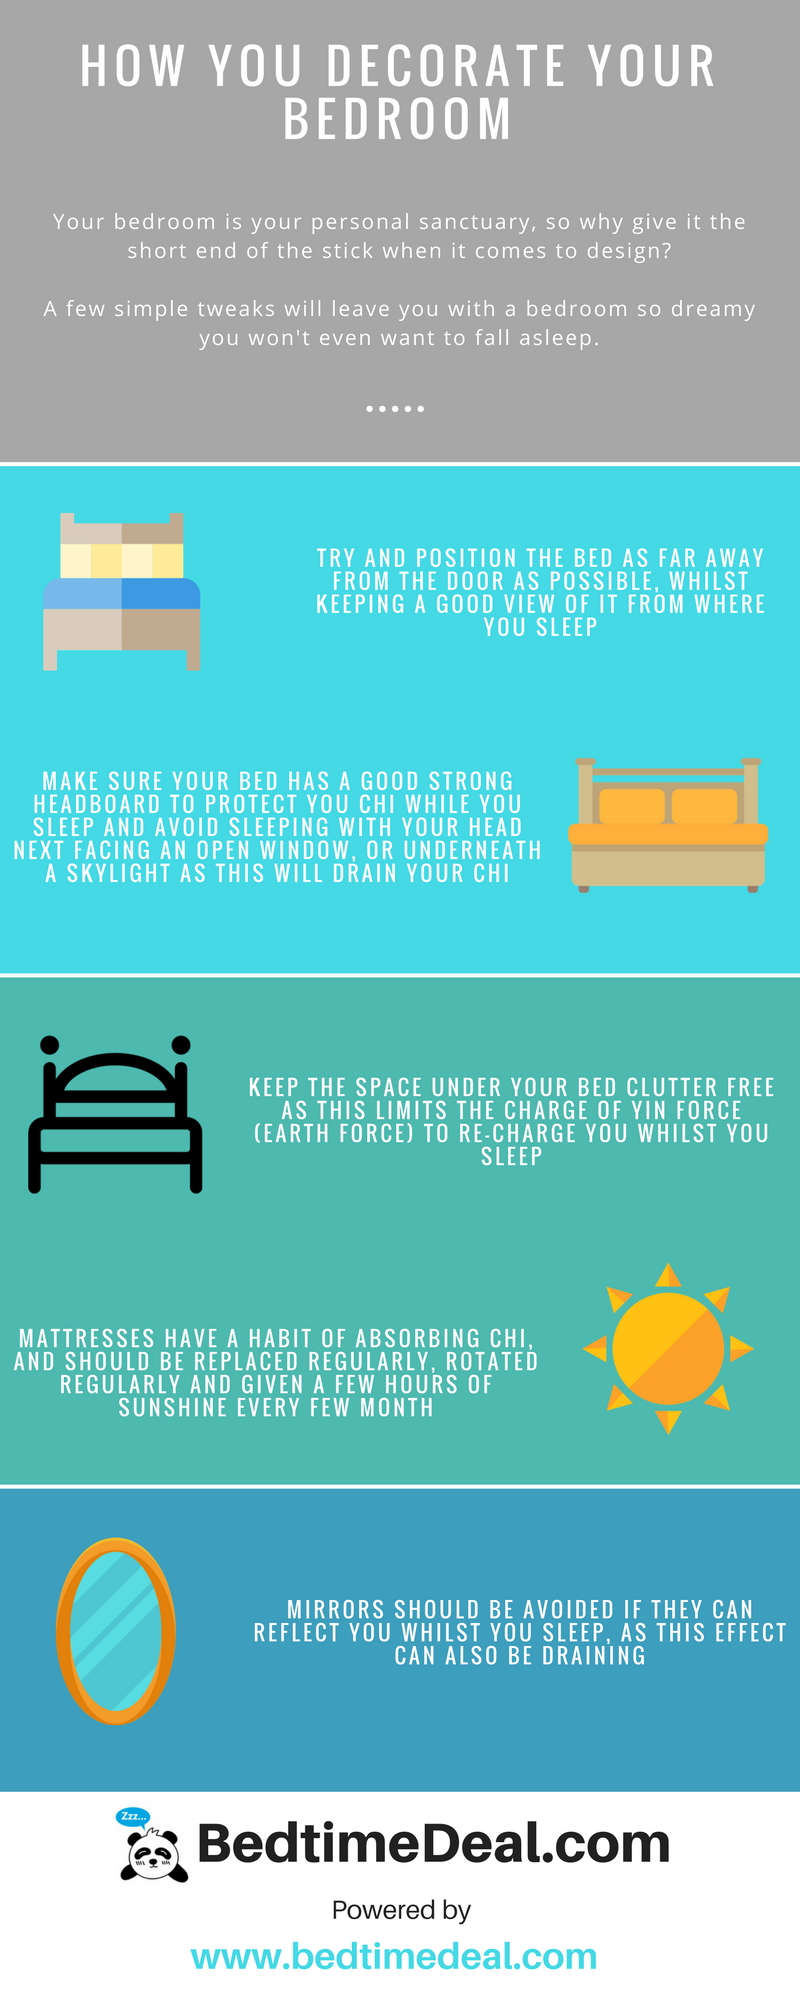 How You Decorate Your Bedroom